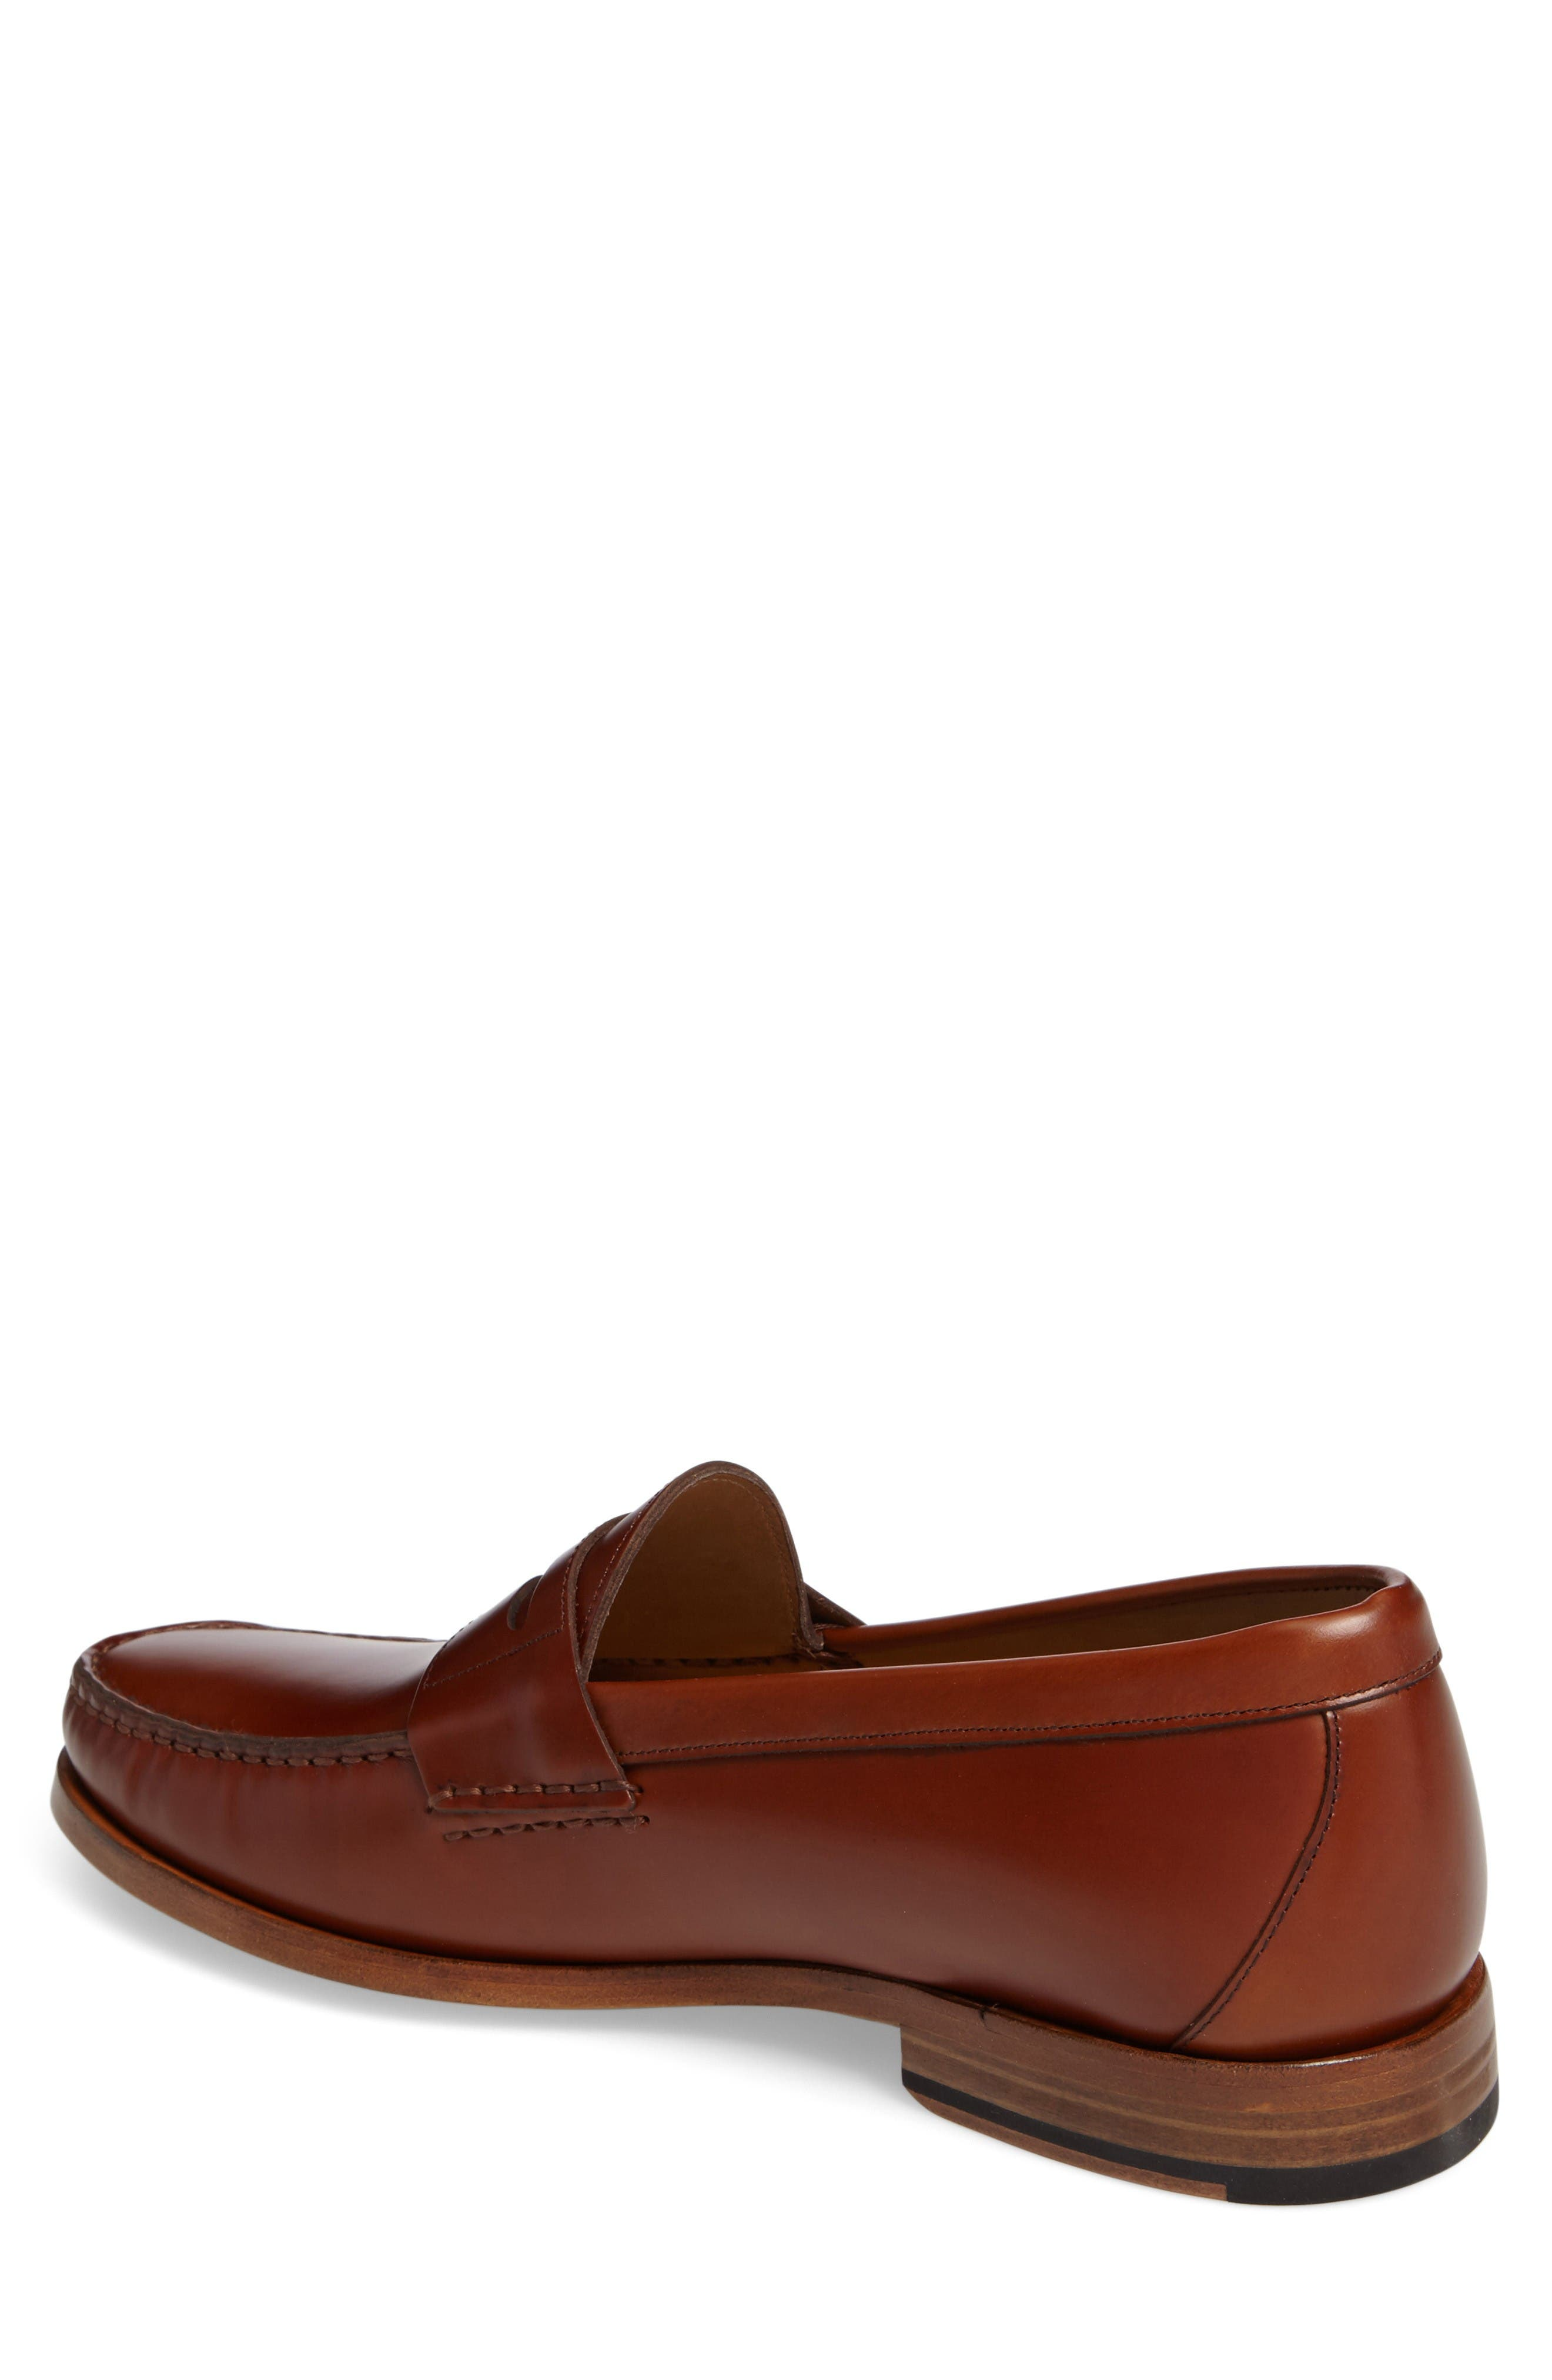 Charlie Penny Loafer,                             Alternate thumbnail 2, color,                             Cognac Leather